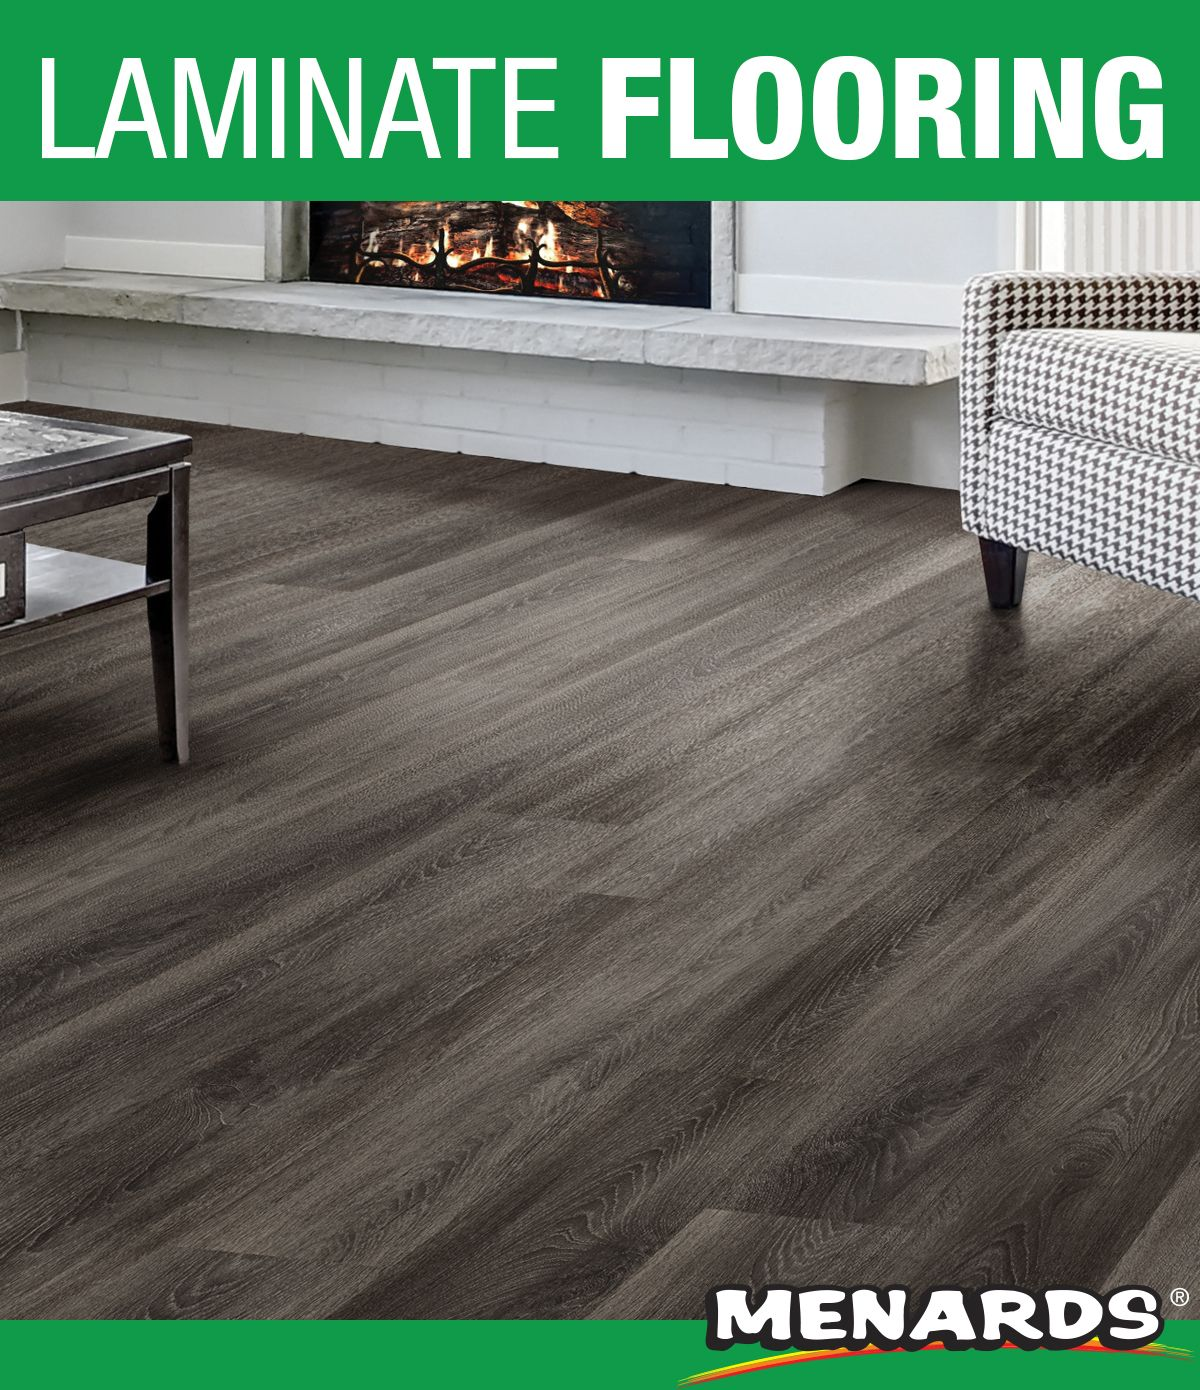 Takett® Grovewood laminate flooring is an easy and